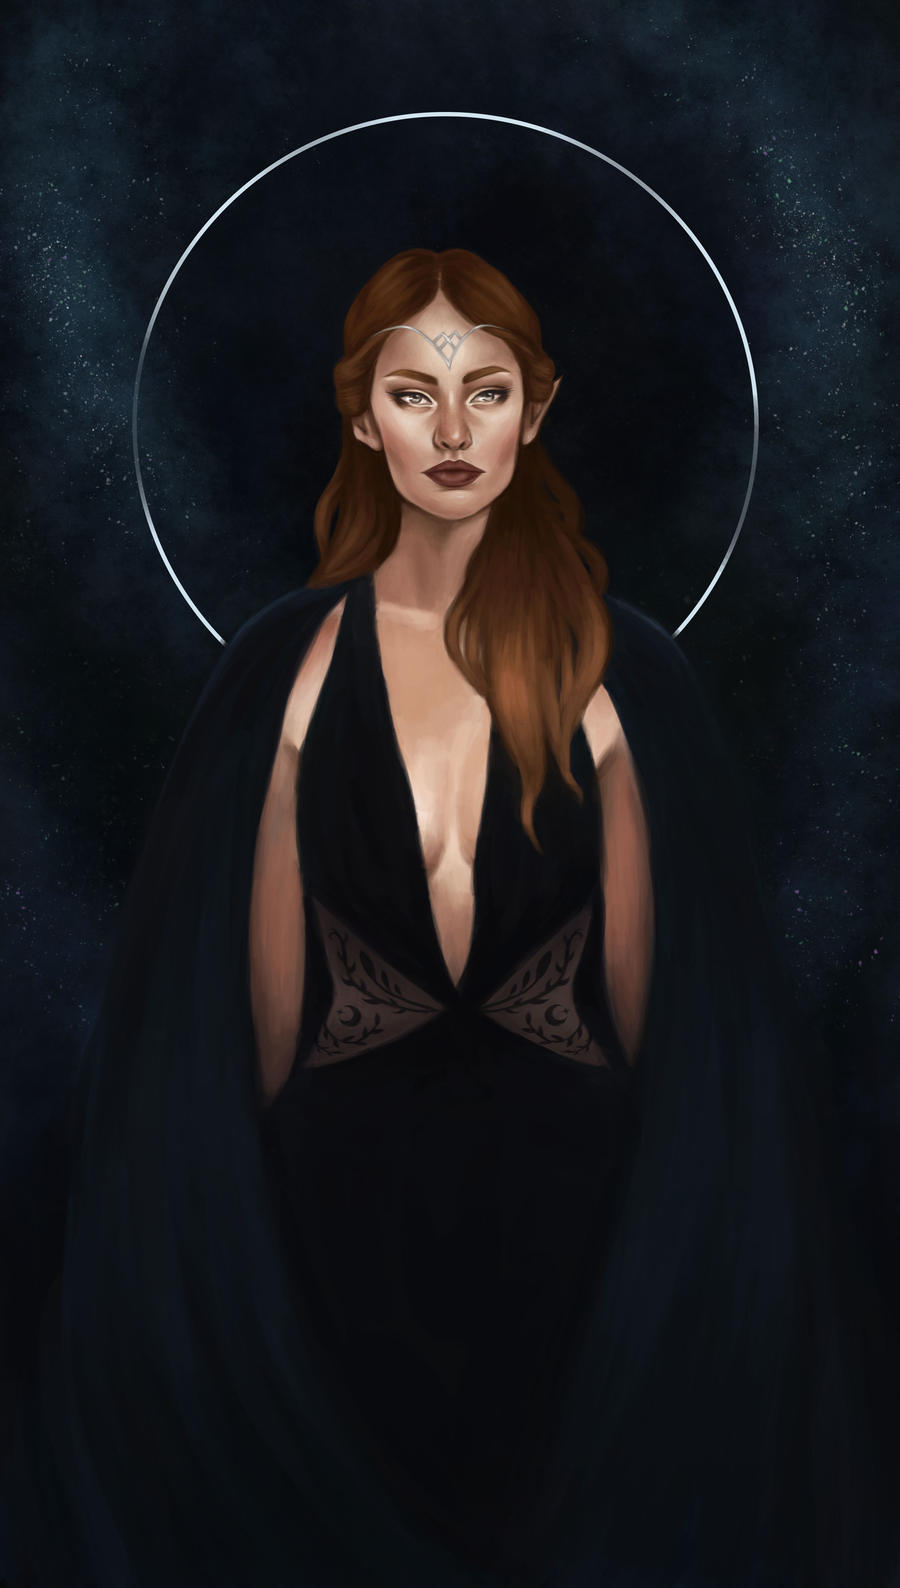 https://img00.deviantart.net/fd9a/i/2017/101/b/d/high_lady_of_the_night_court_by_xxgen-dadd0ze.jpg